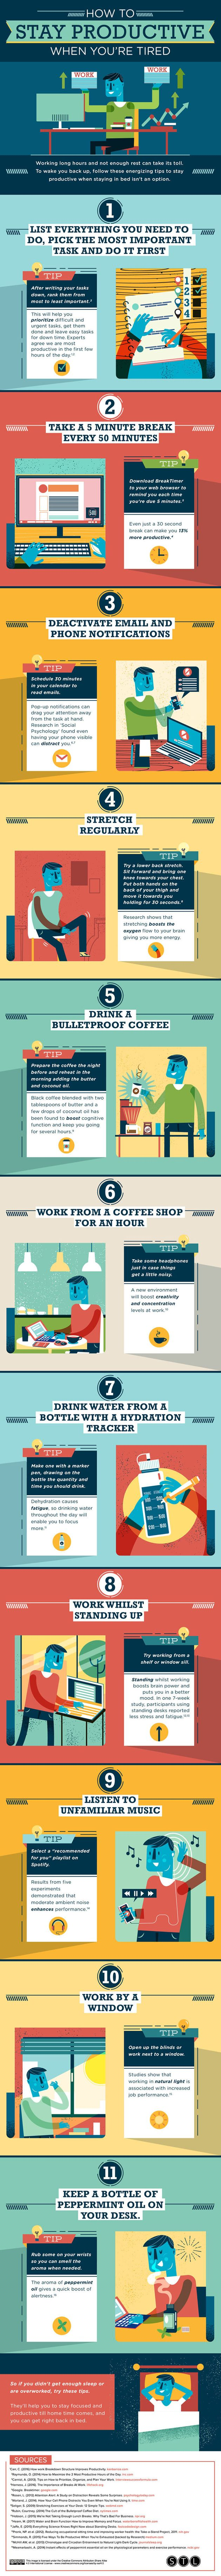 How To Actually Be Productive When You're Really